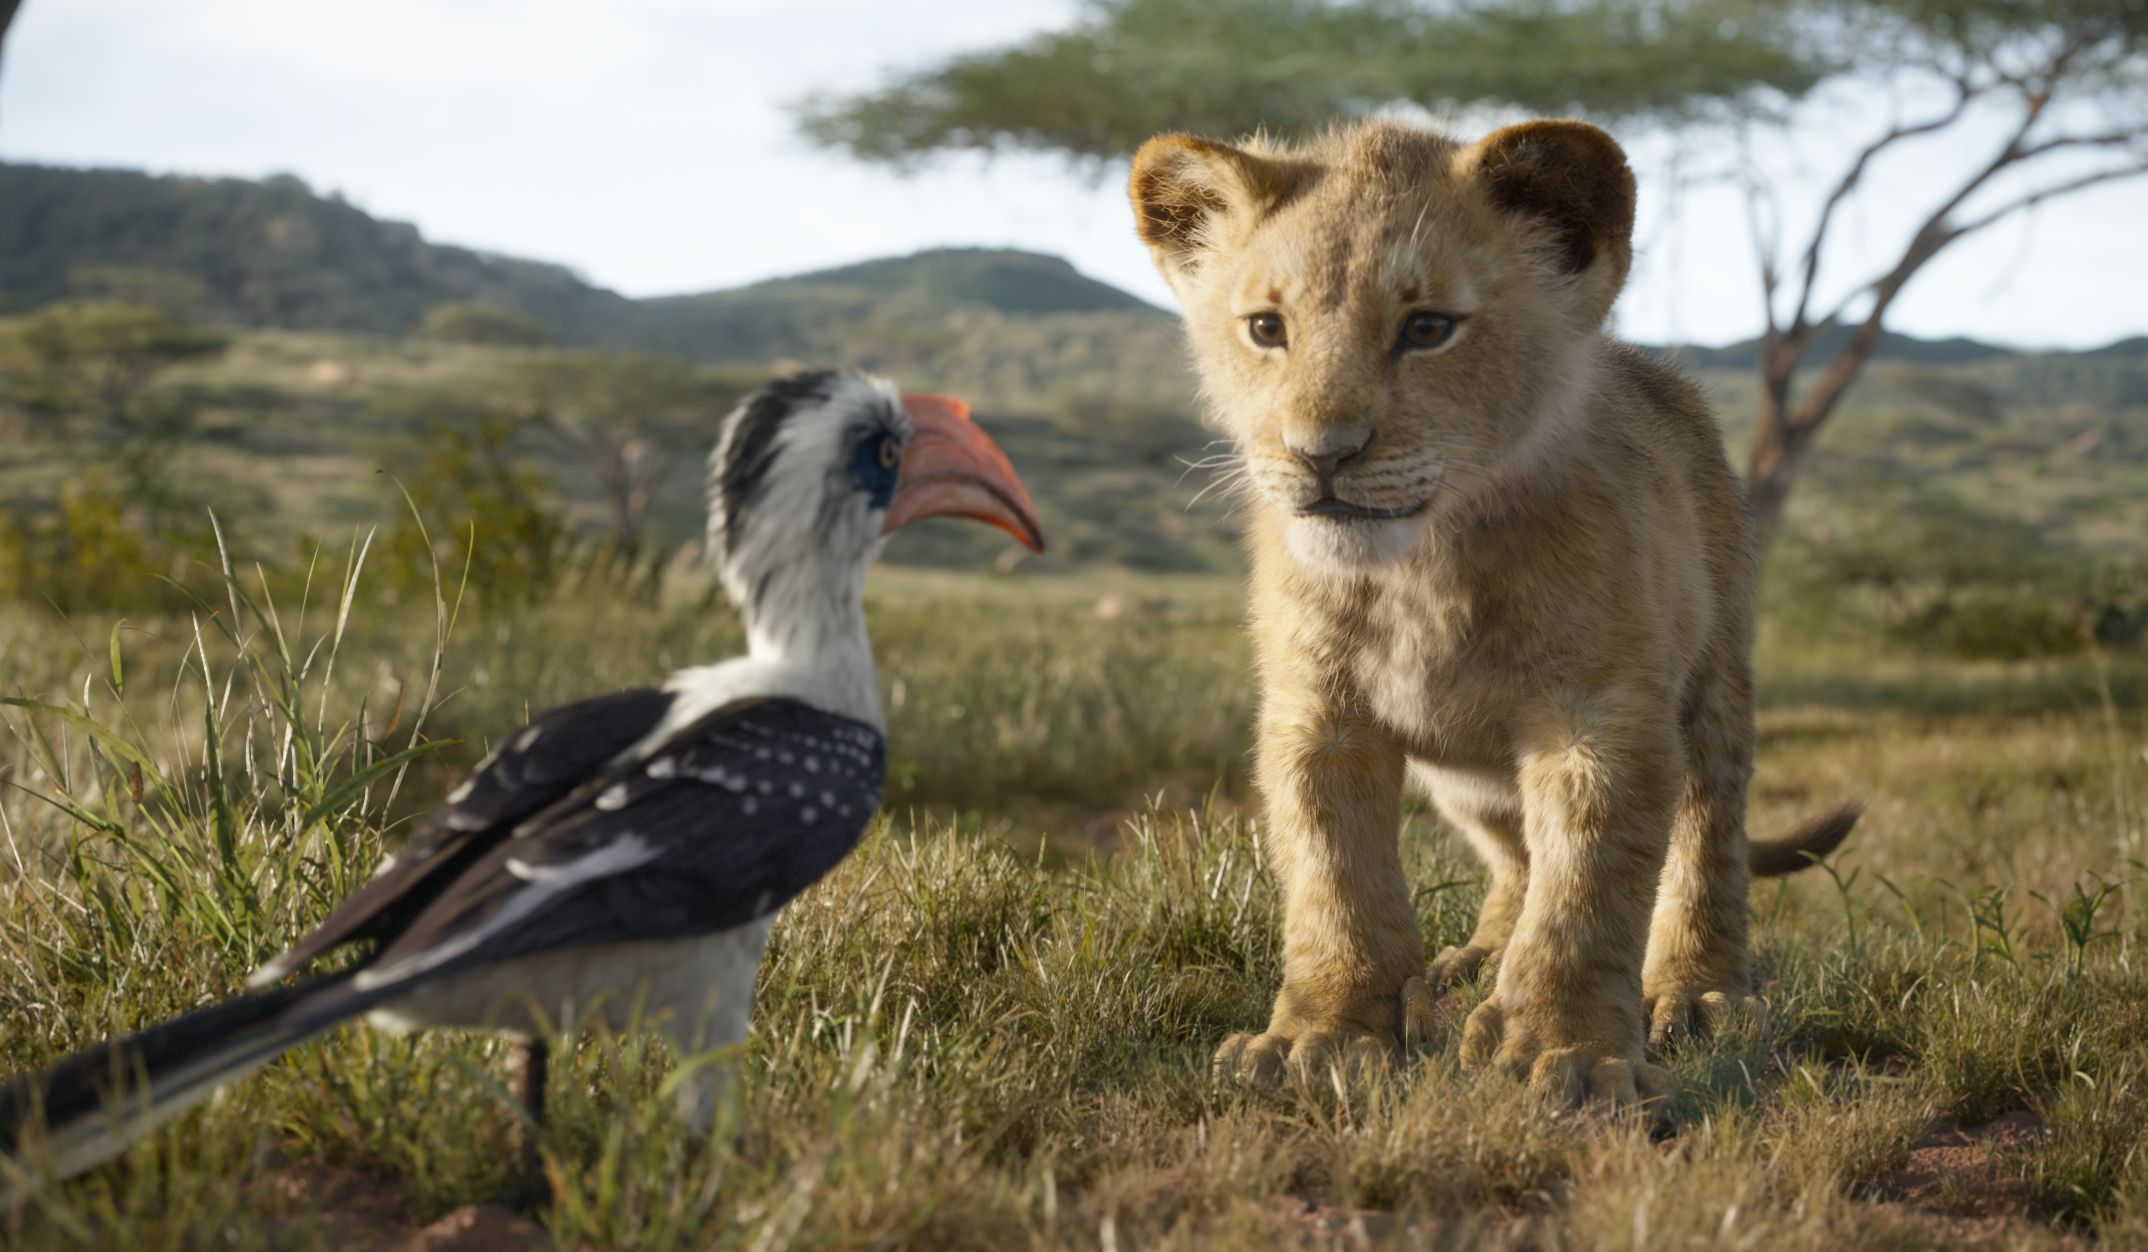 The Lion King 2019 remake - young Simba looking at Zazu on the savanna